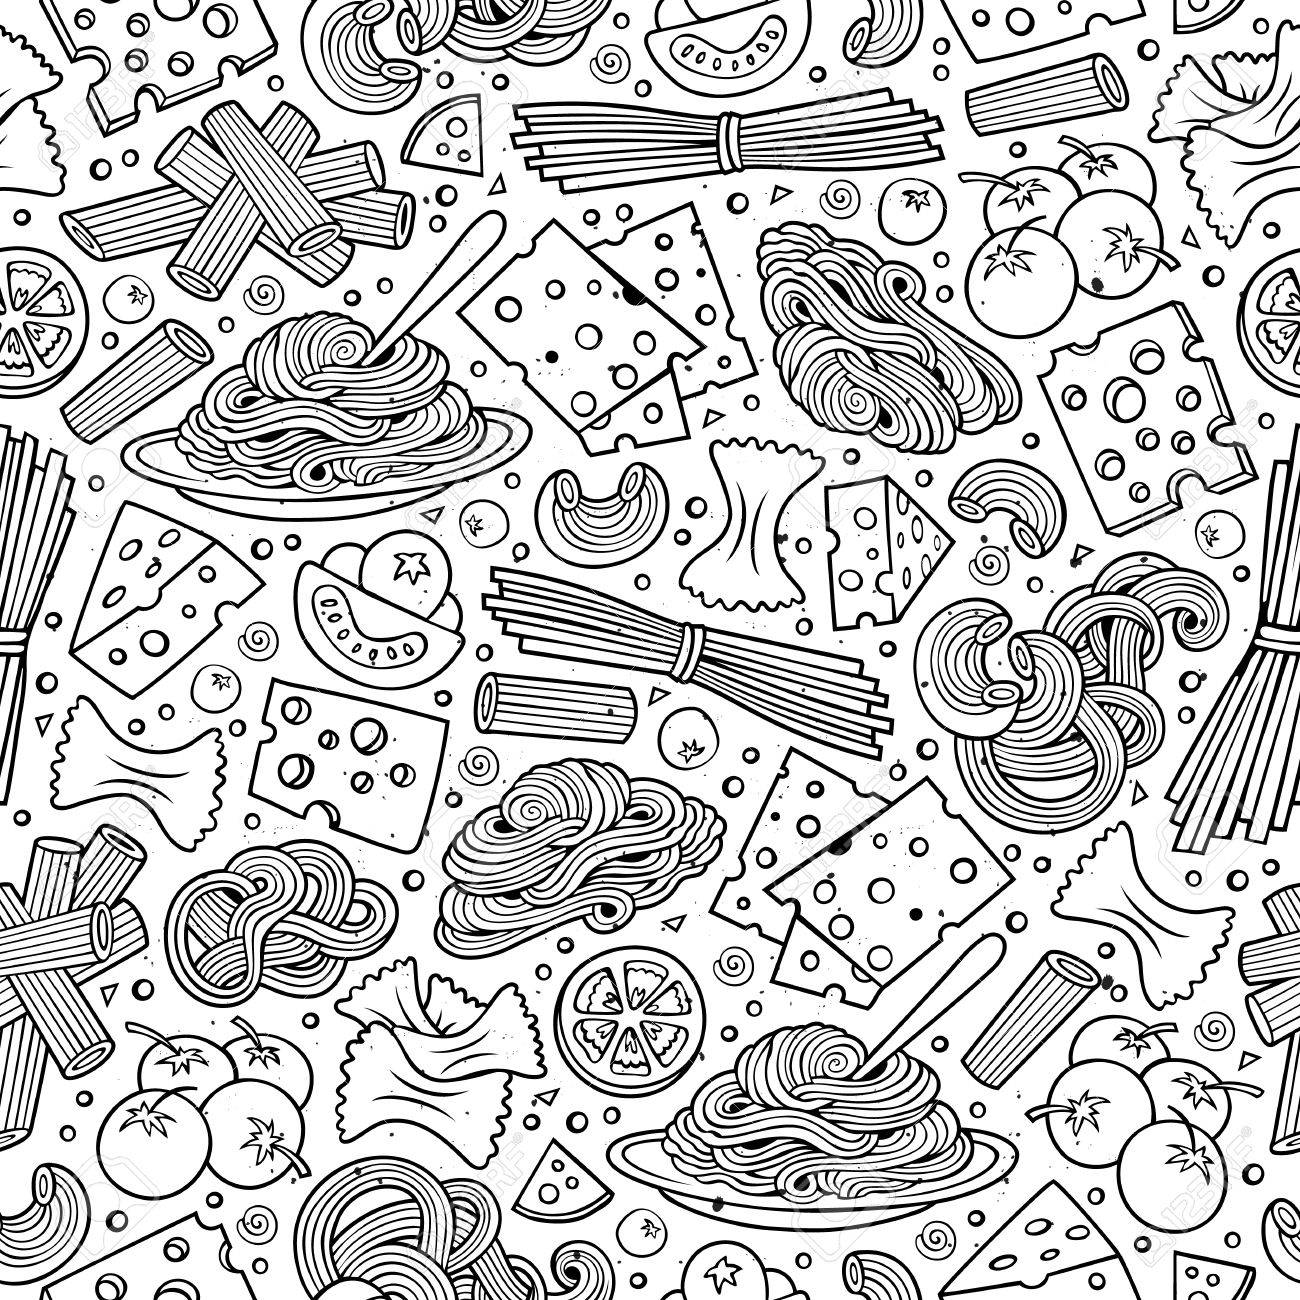 1300x1300 Cartoon Cute Hand Drawn Italian Food Seamless Pattern. Line Art